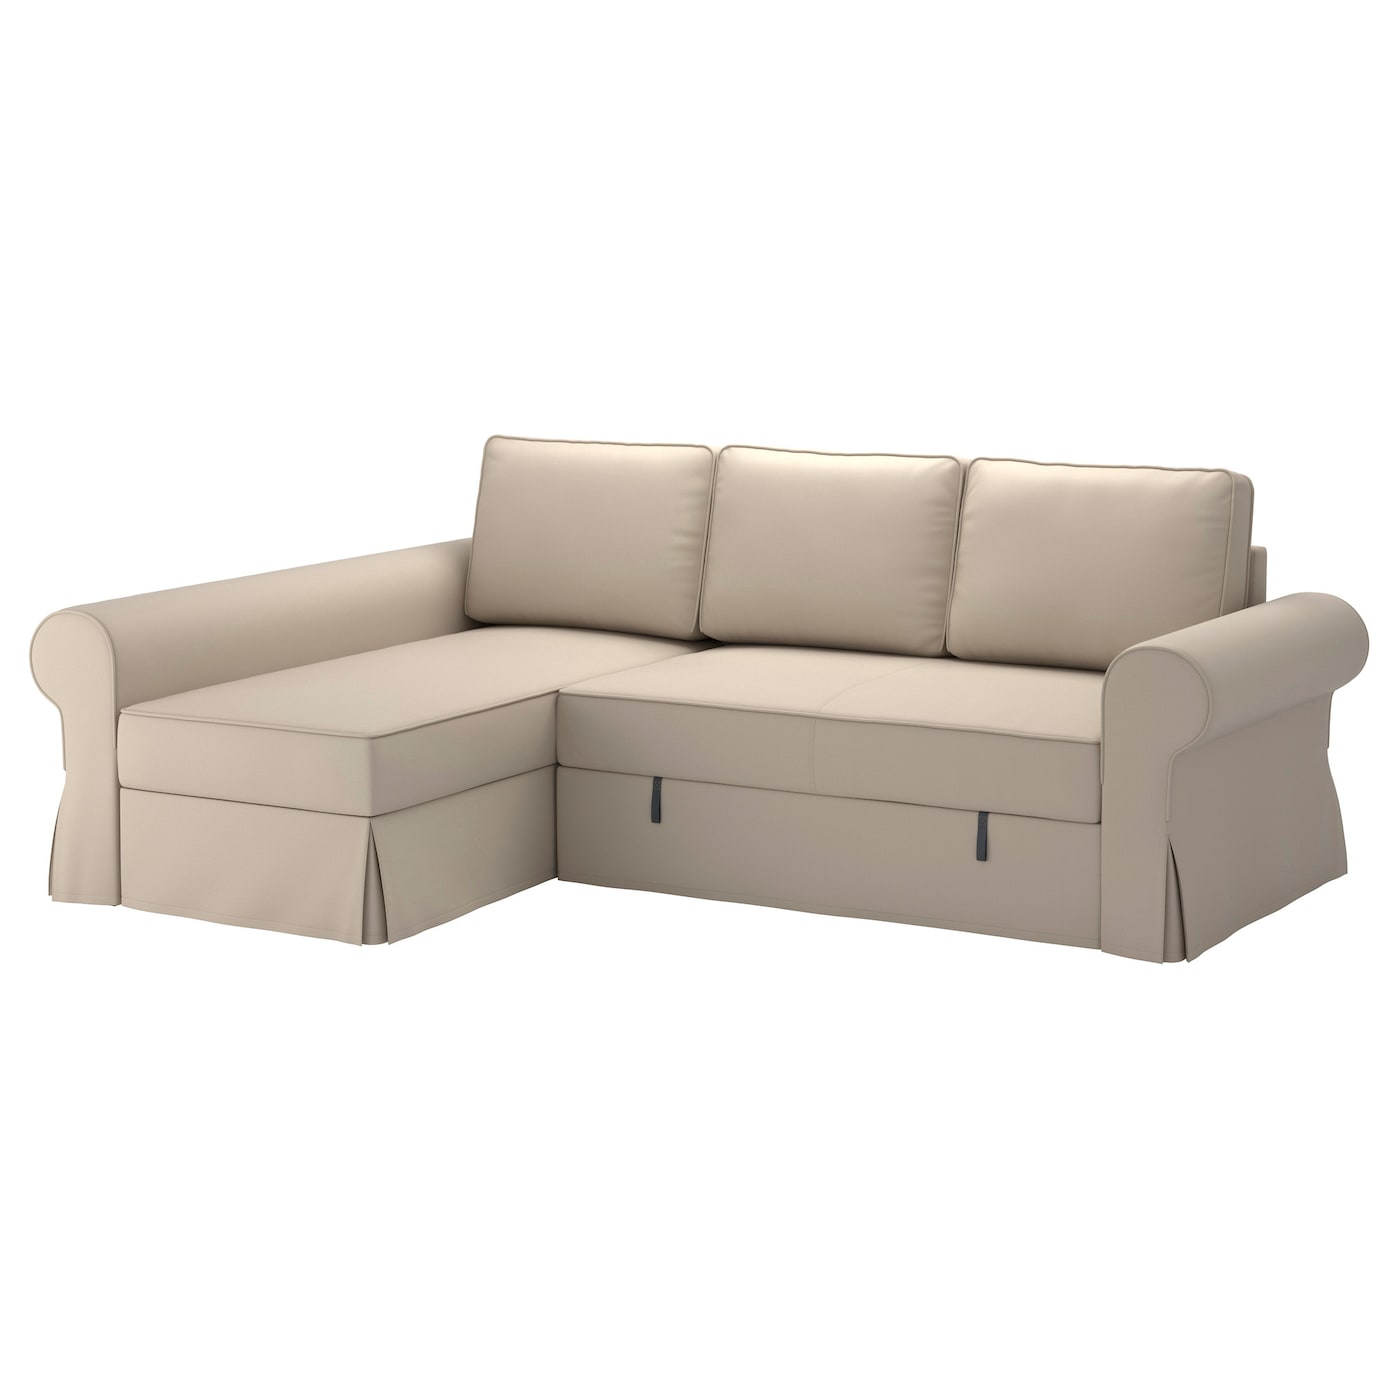 Backabro cover sofa bed with chaise longue ramna beige ikea for Beige sectional with chaise